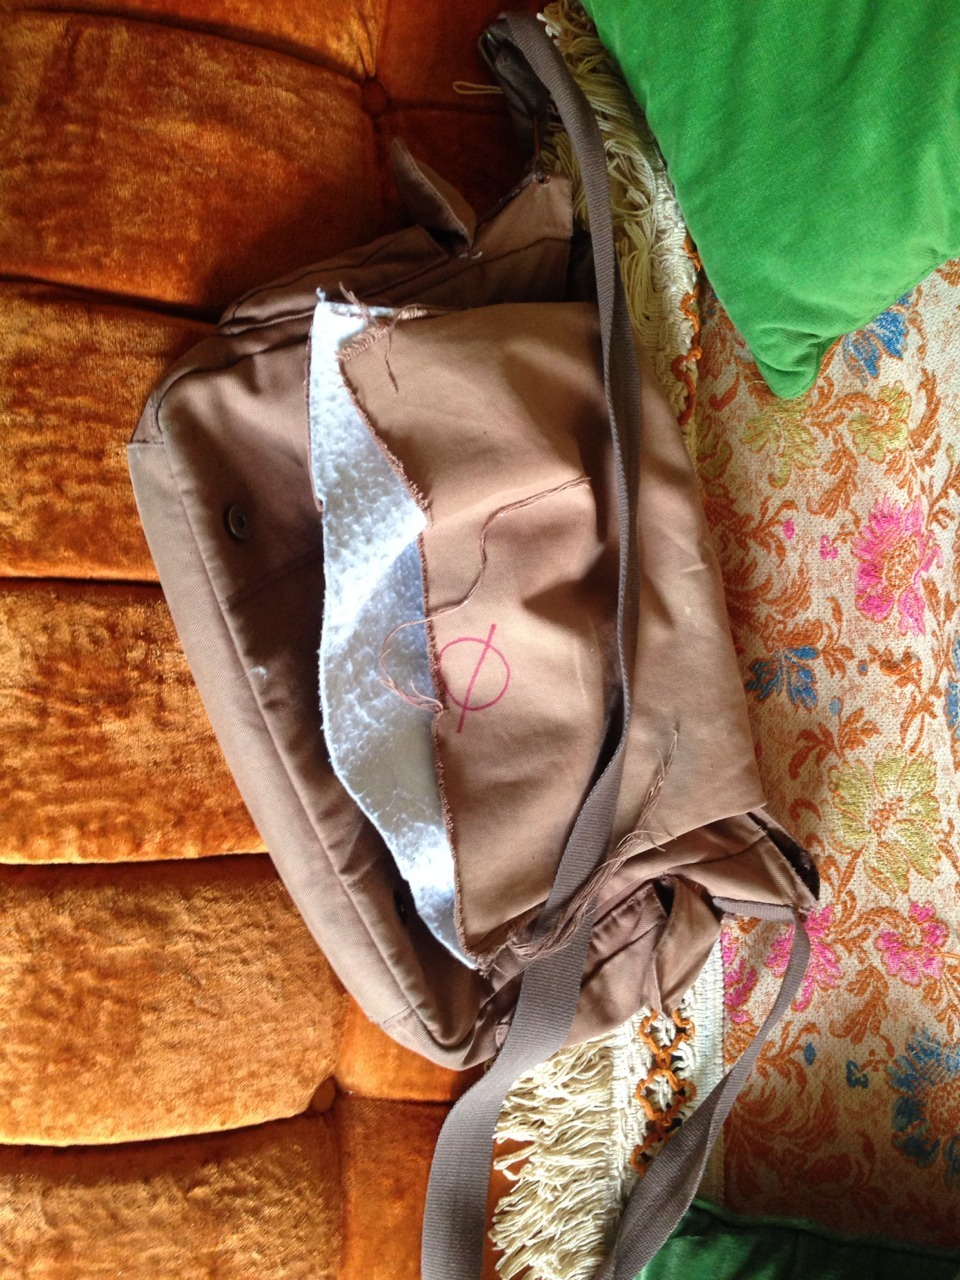 RIP the magic bag that I carried for half a decade. Your replacement is far mor magical, for it was bought with love.